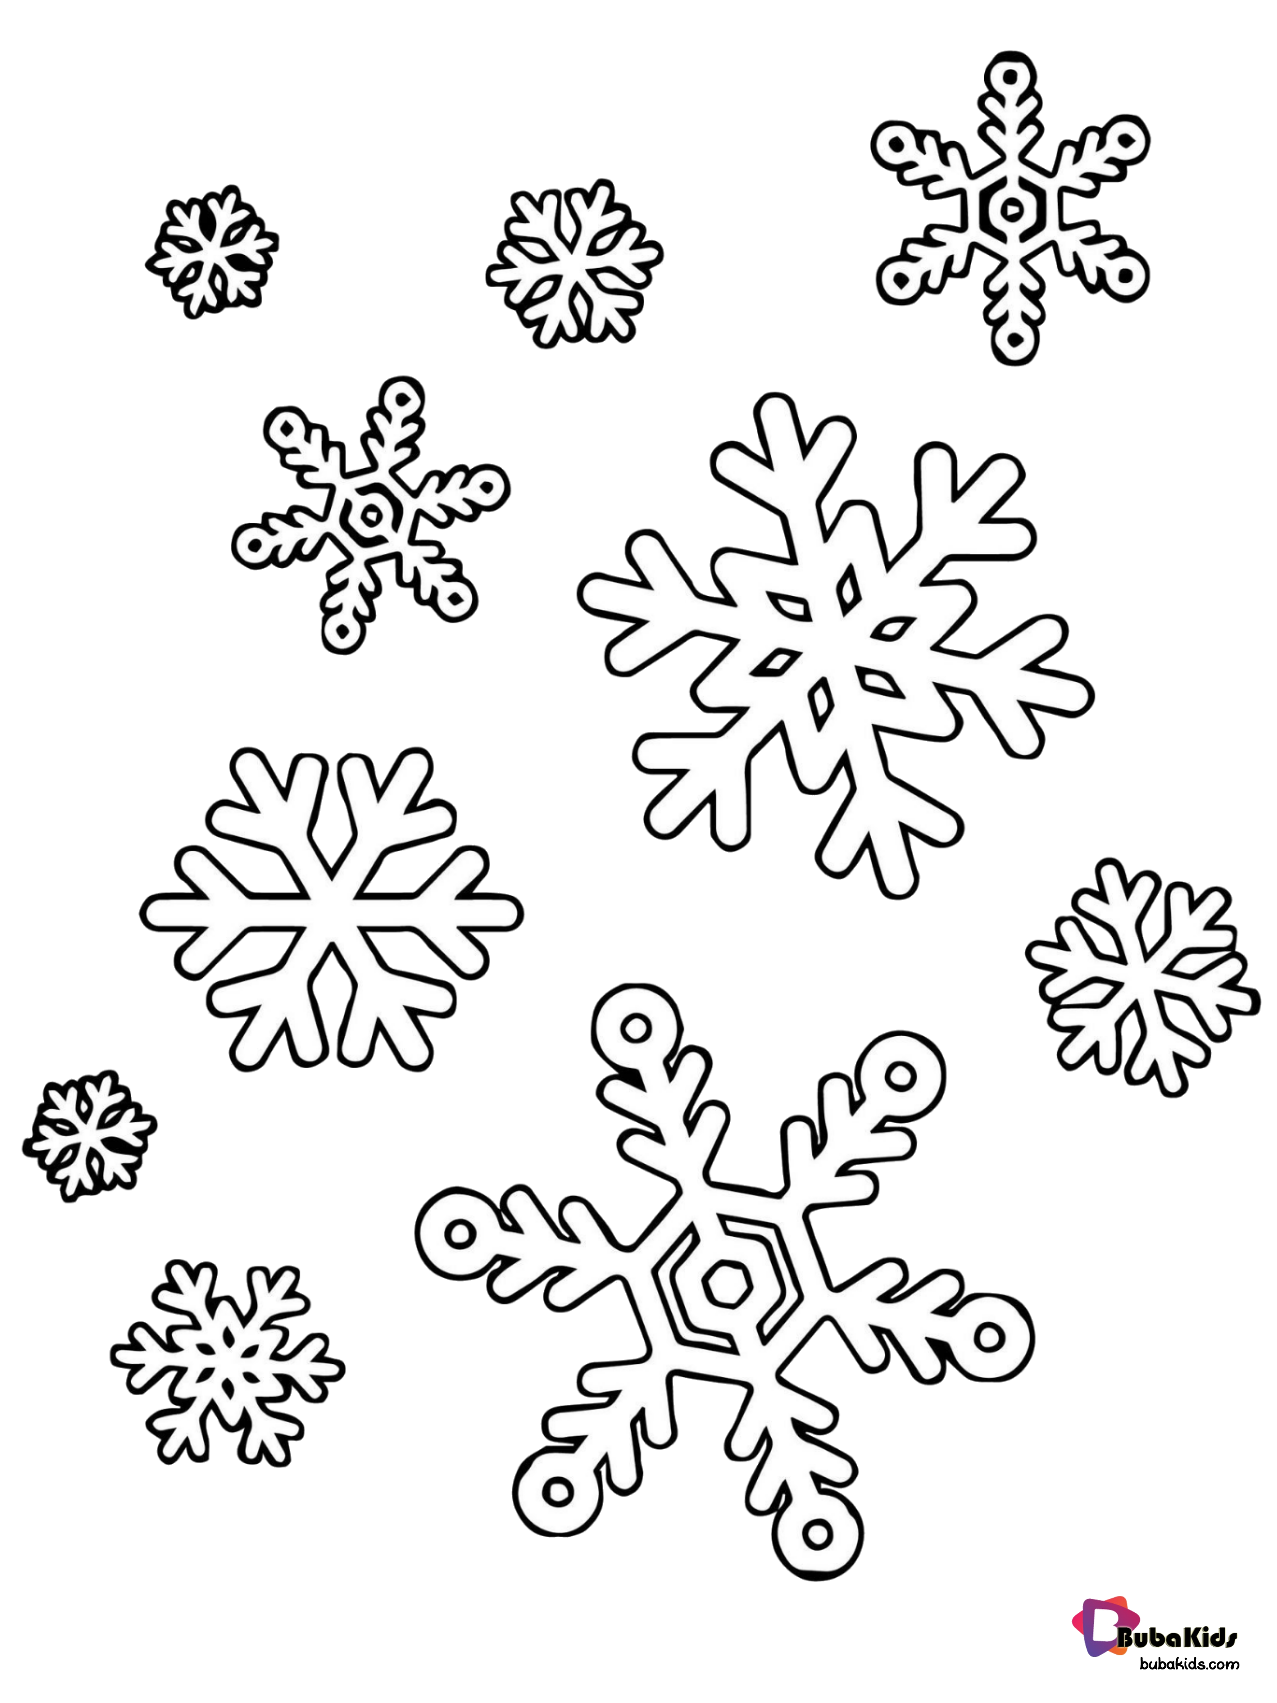 - Winter Snowflakes Coloring Page. In 2020 Snowflake Coloring